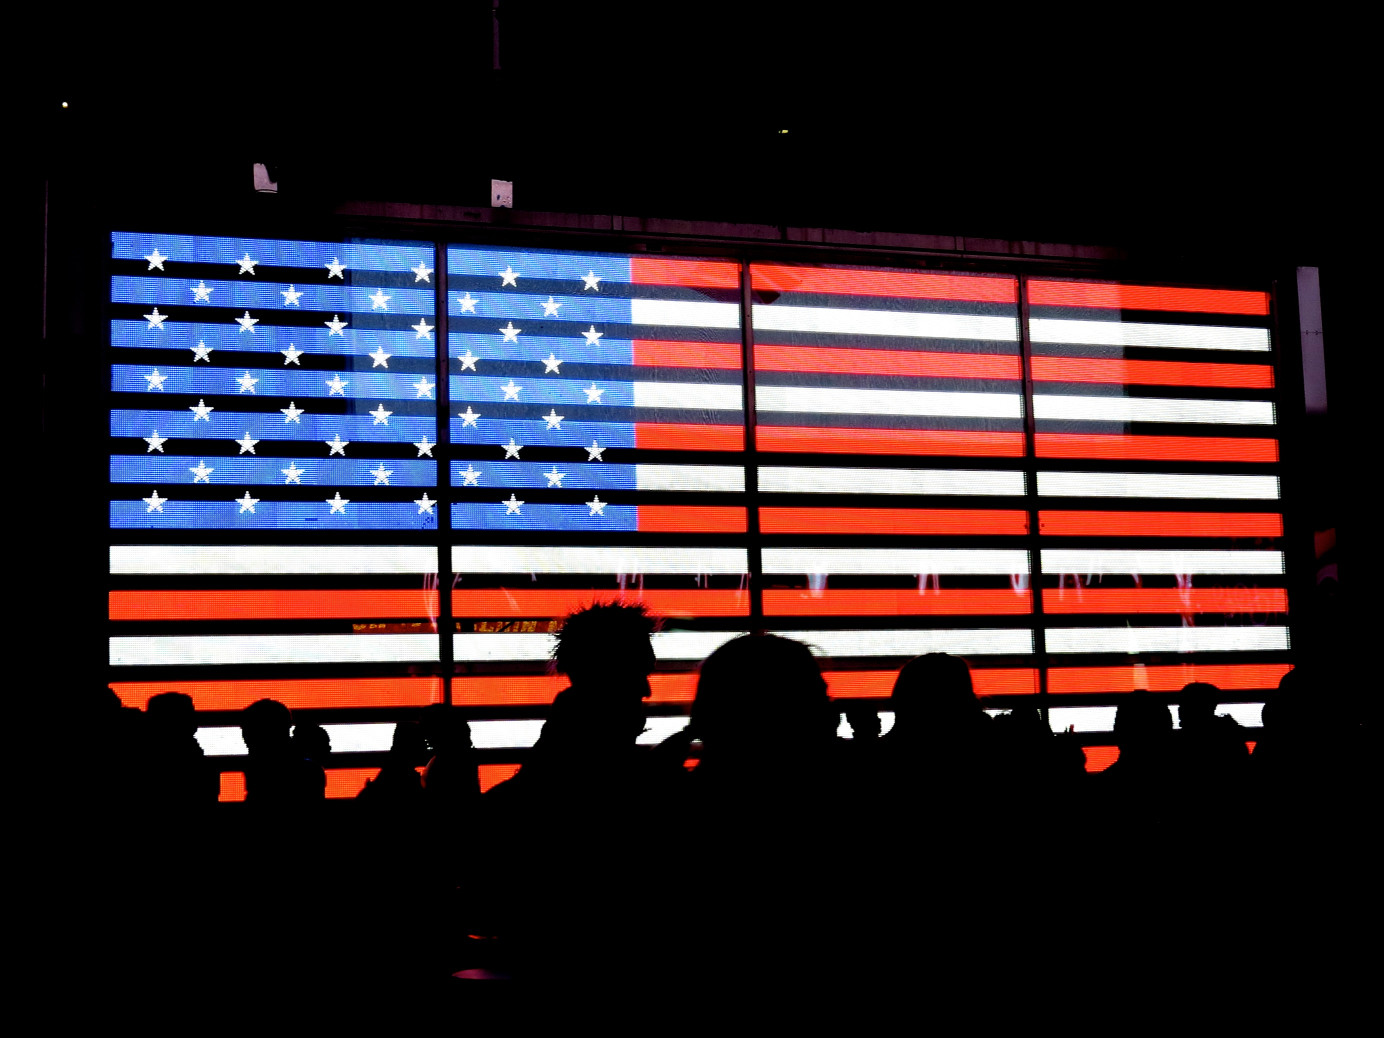 Silhouette of people in front of neon American flag